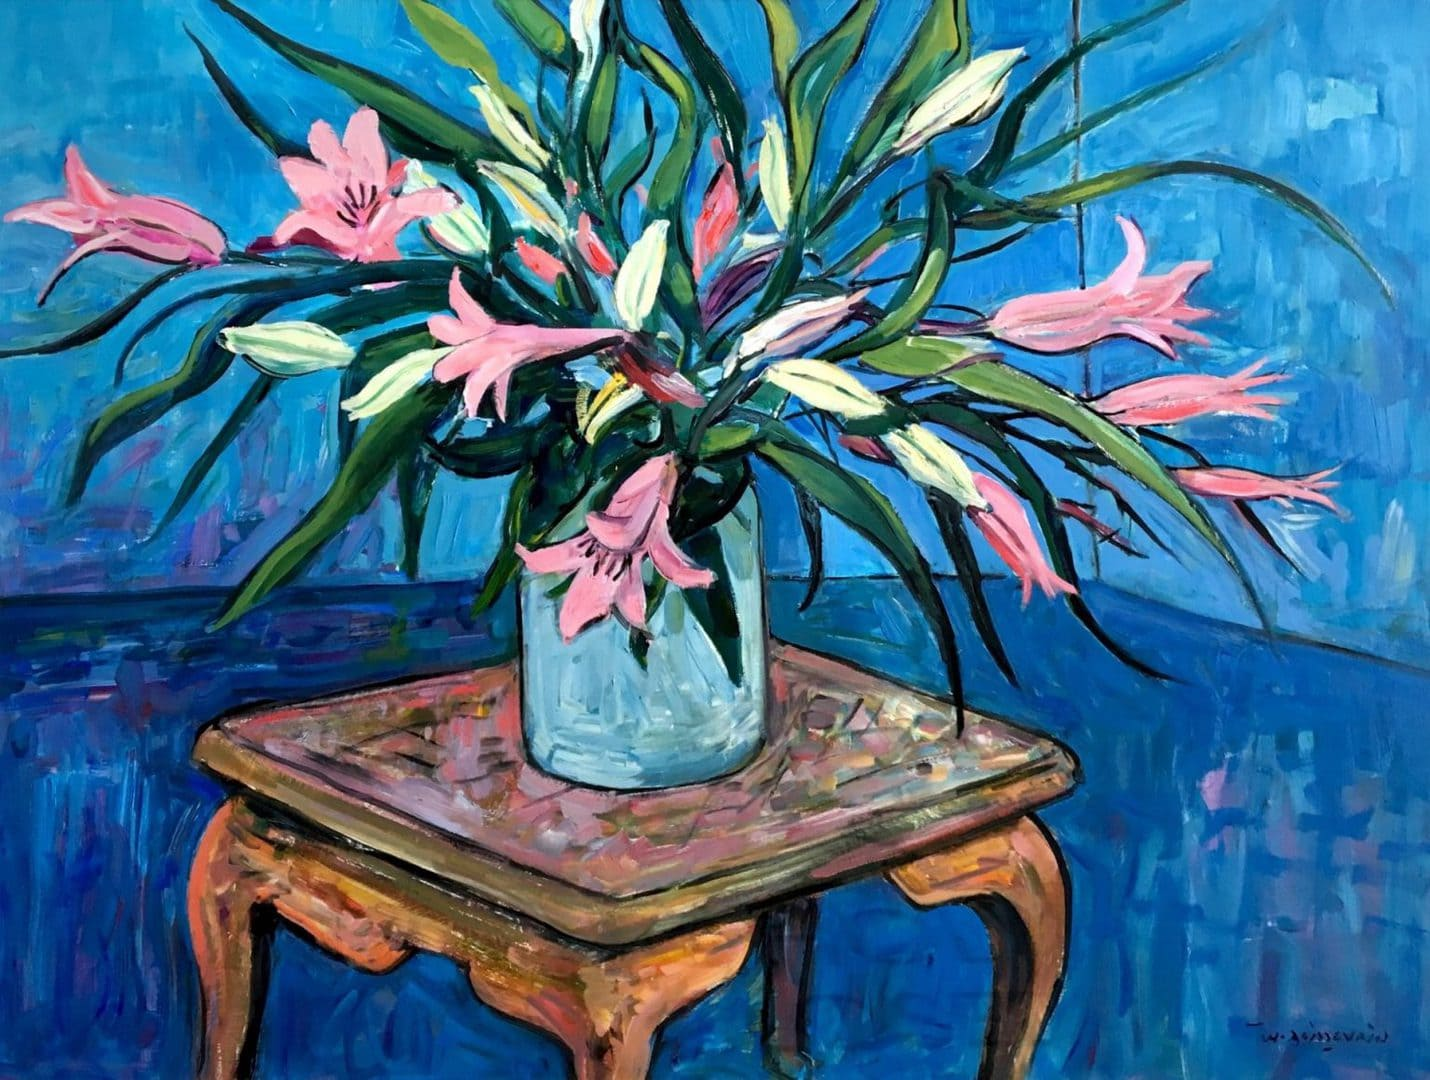 """Wim Boissevains's """"Flowers on a Table"""" oil painting product"""